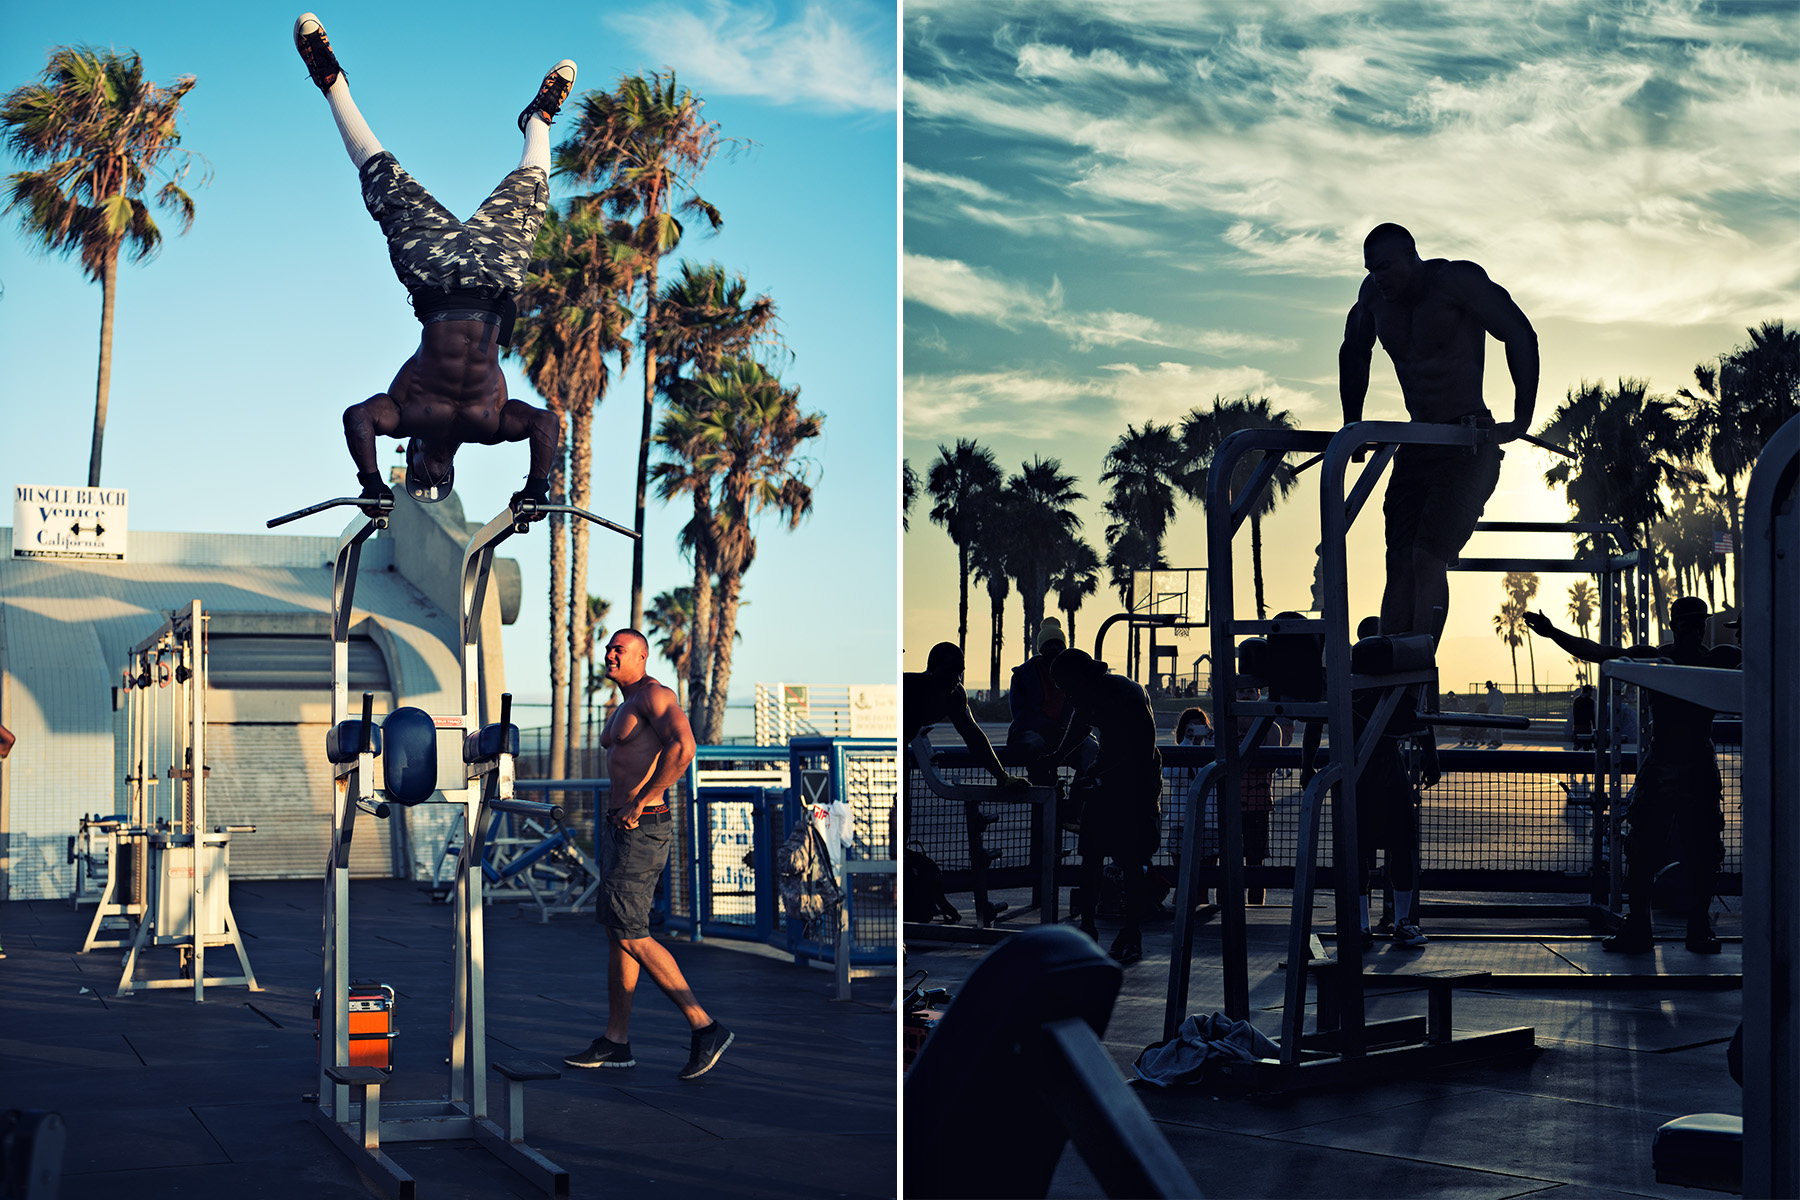 body builders at Muscle Beach Venice